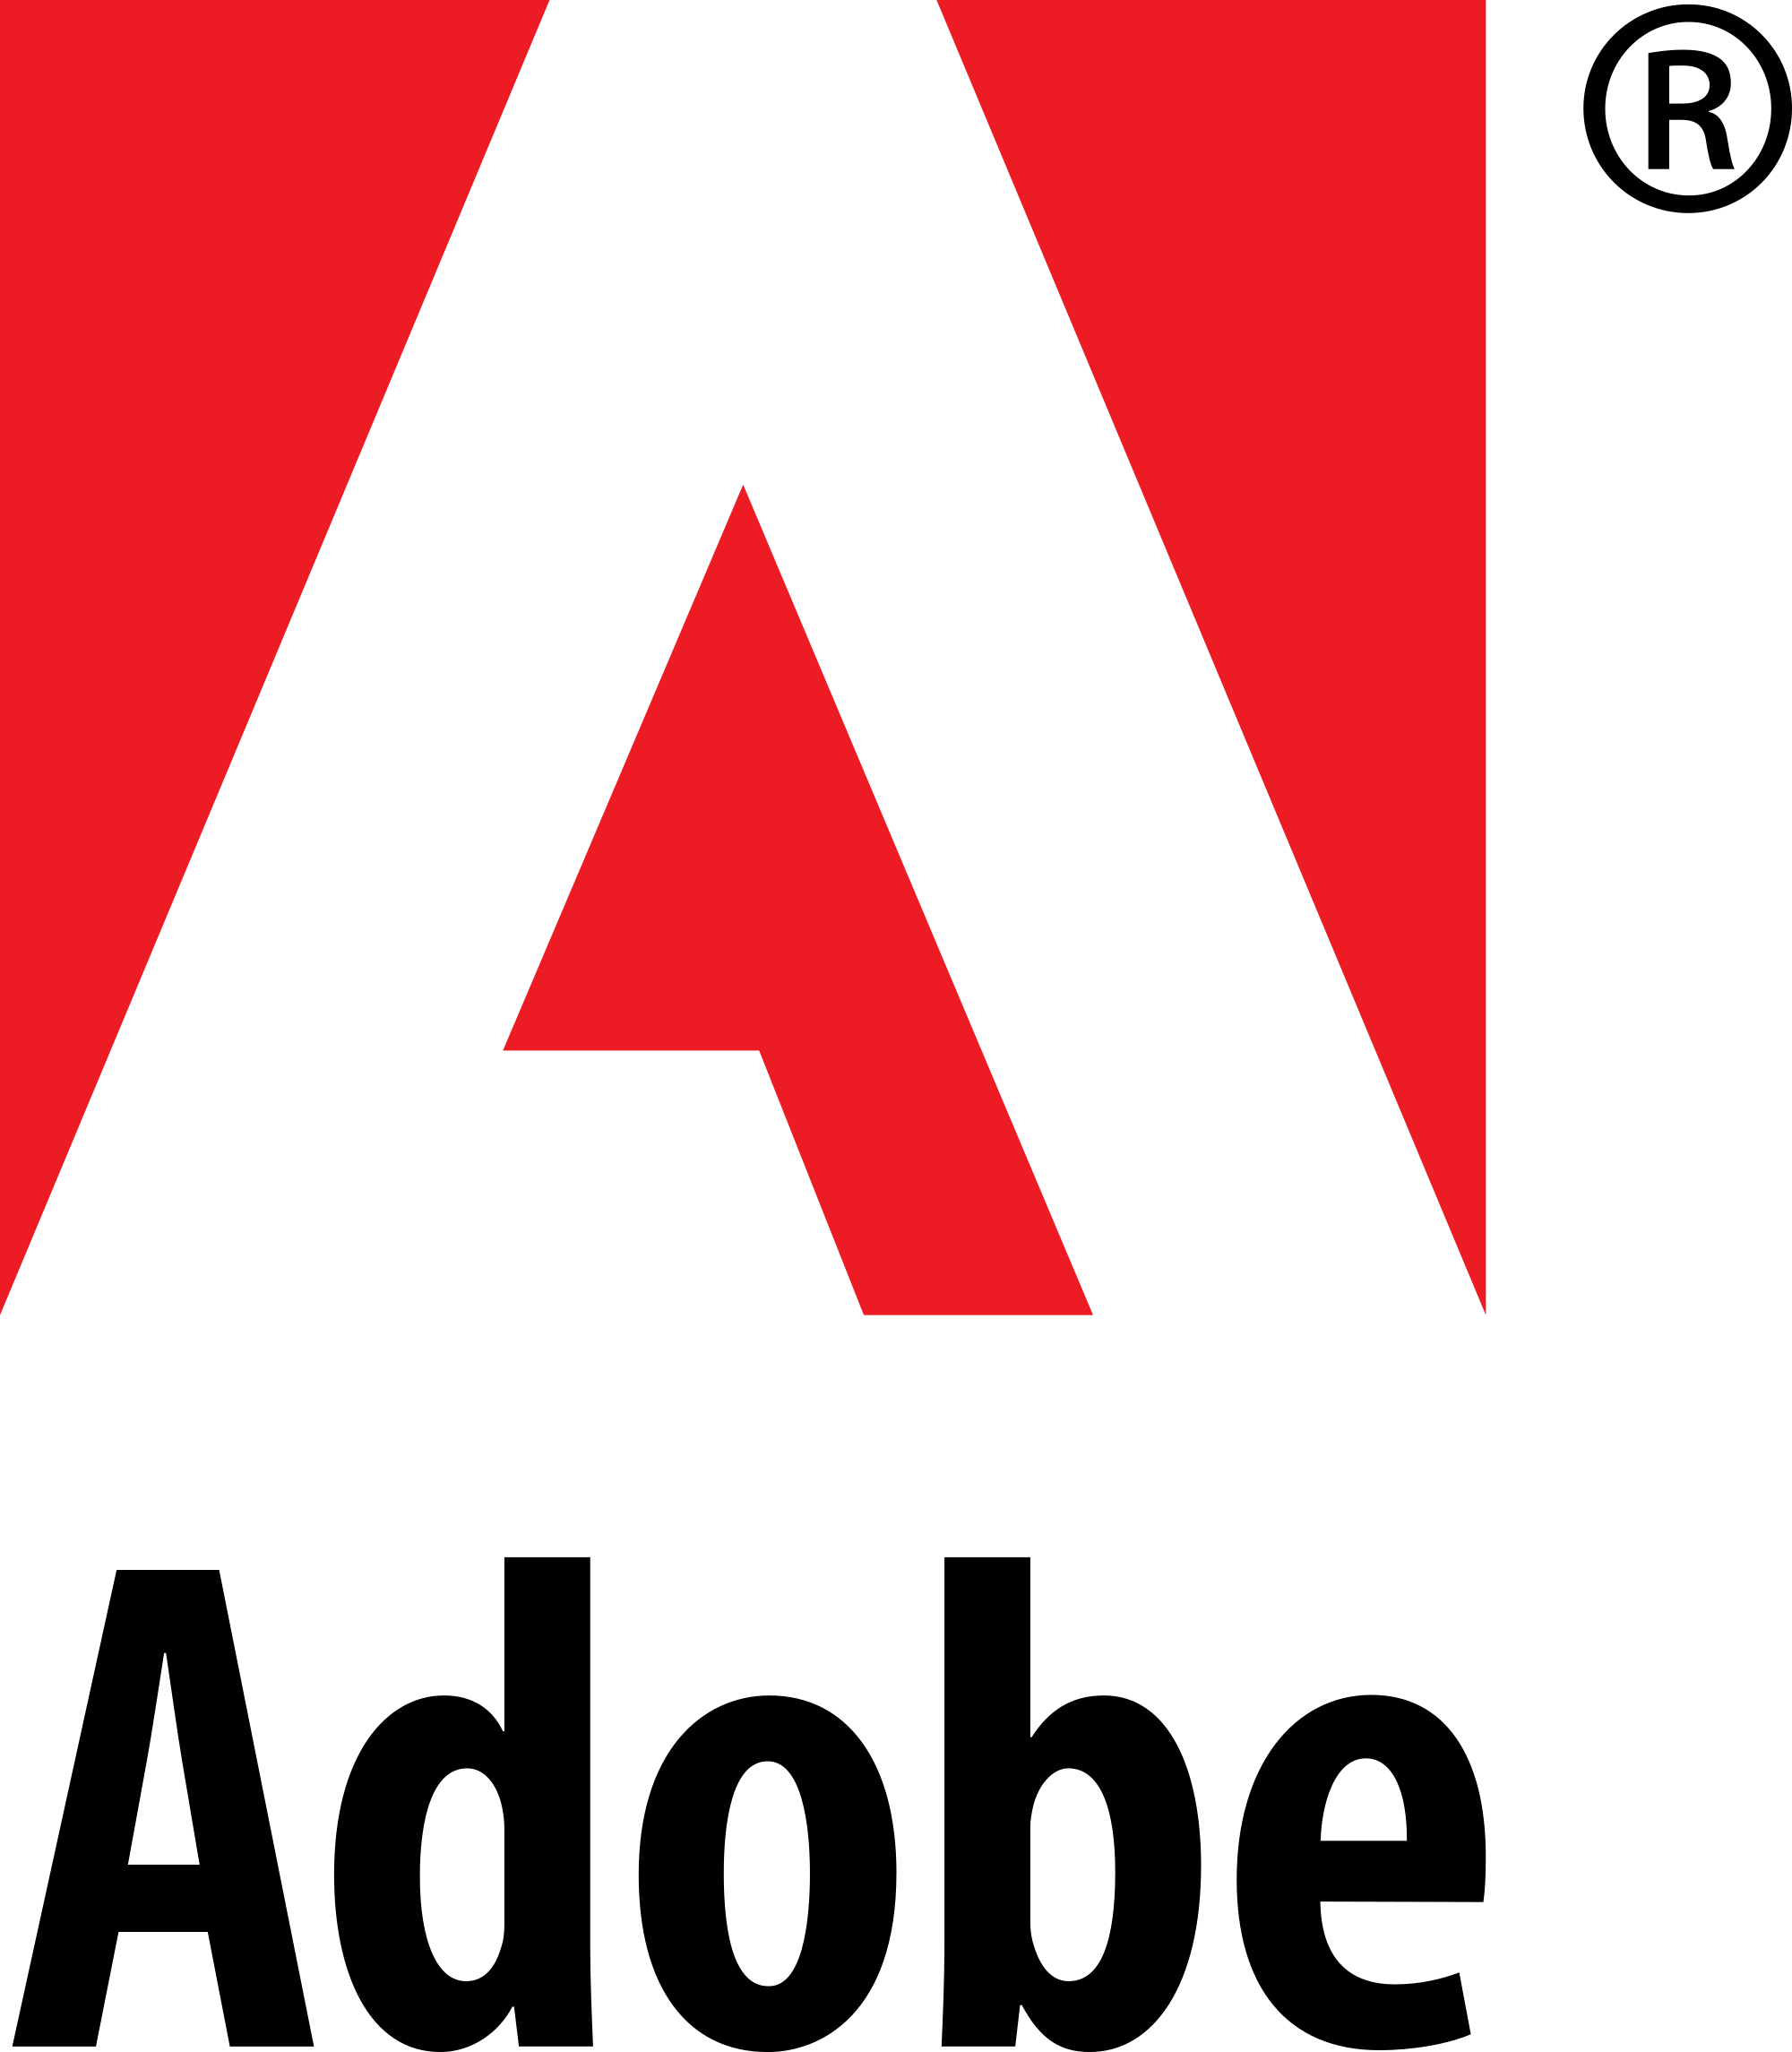 Adobe logos png. File systems logo and